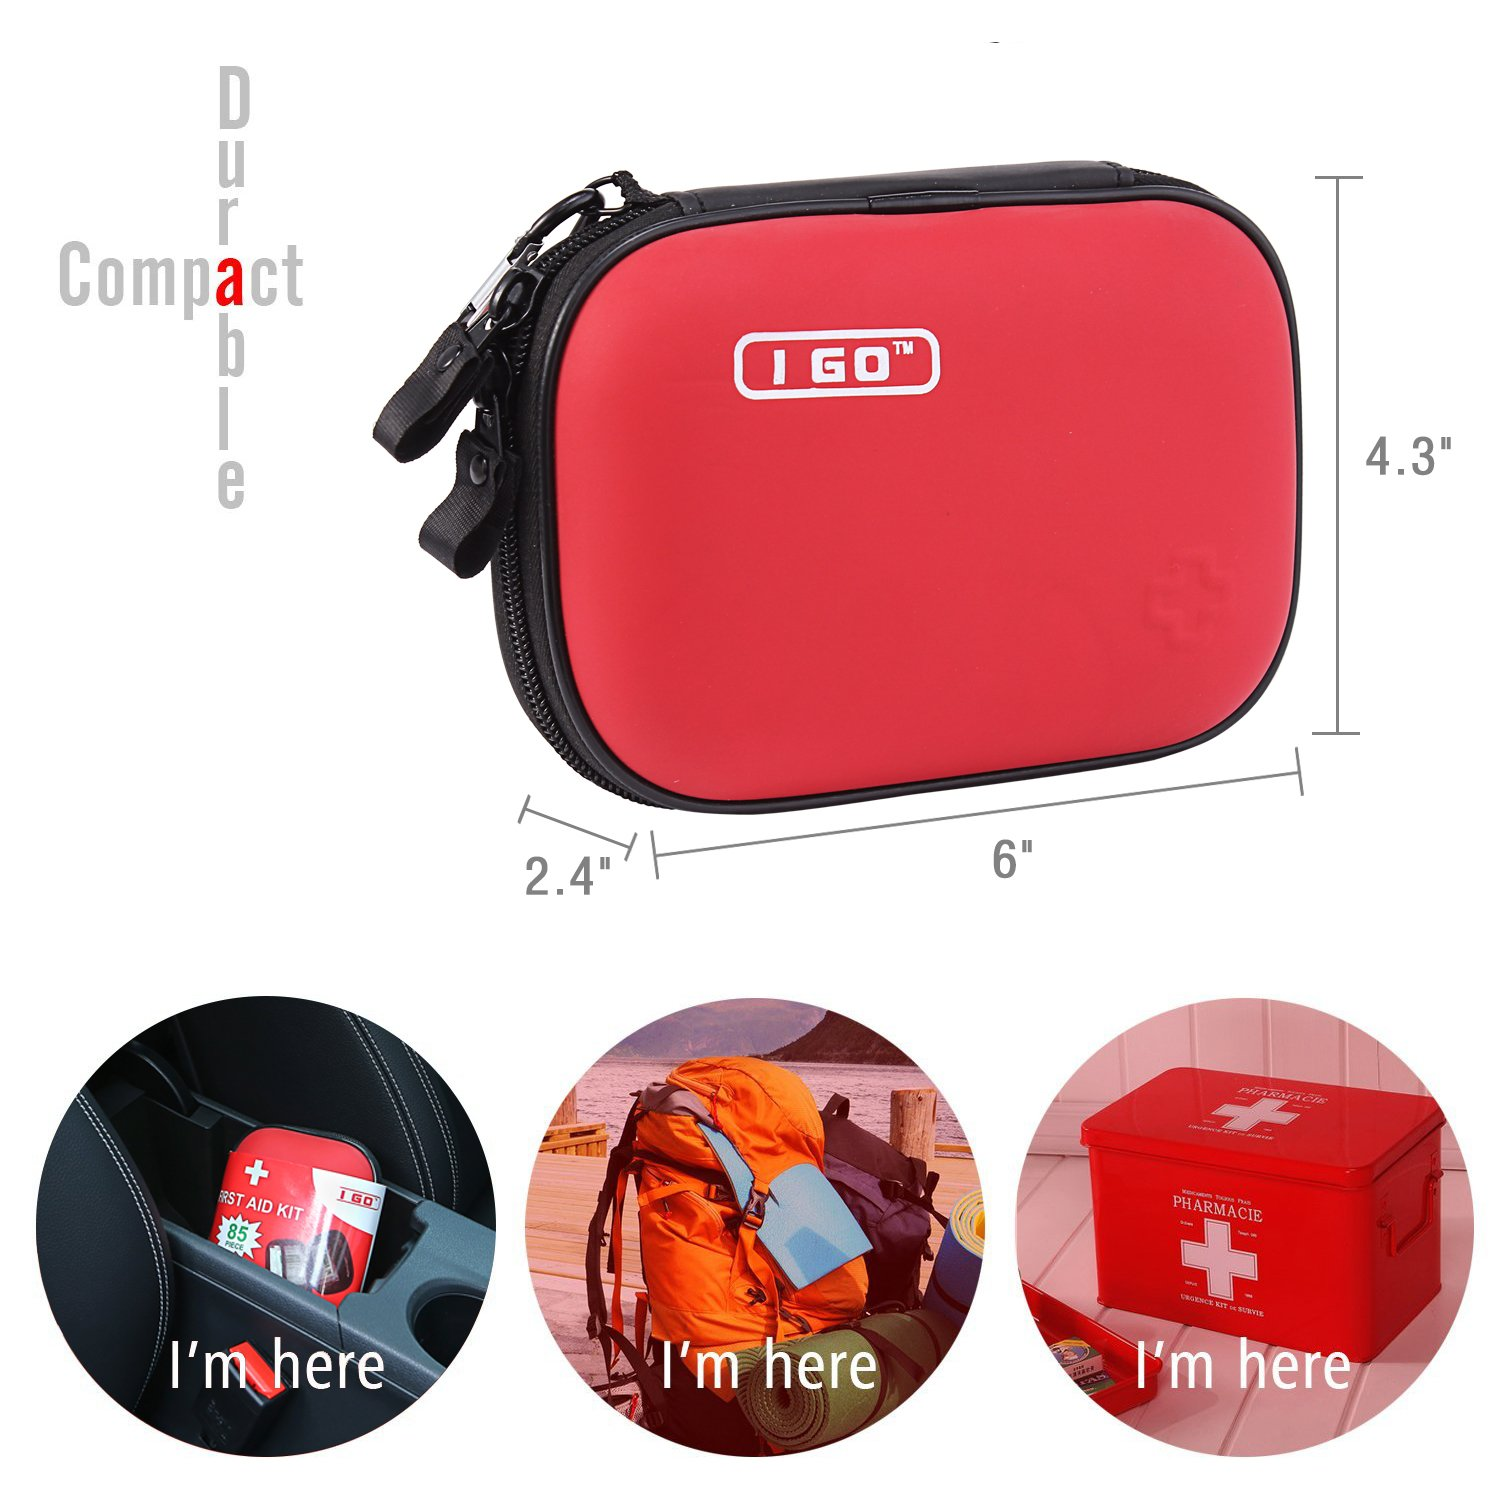 I Go Compact First Aid Kit - Hard Shell Case for Hiking, Camping, Travel, Car - 85 Pieces